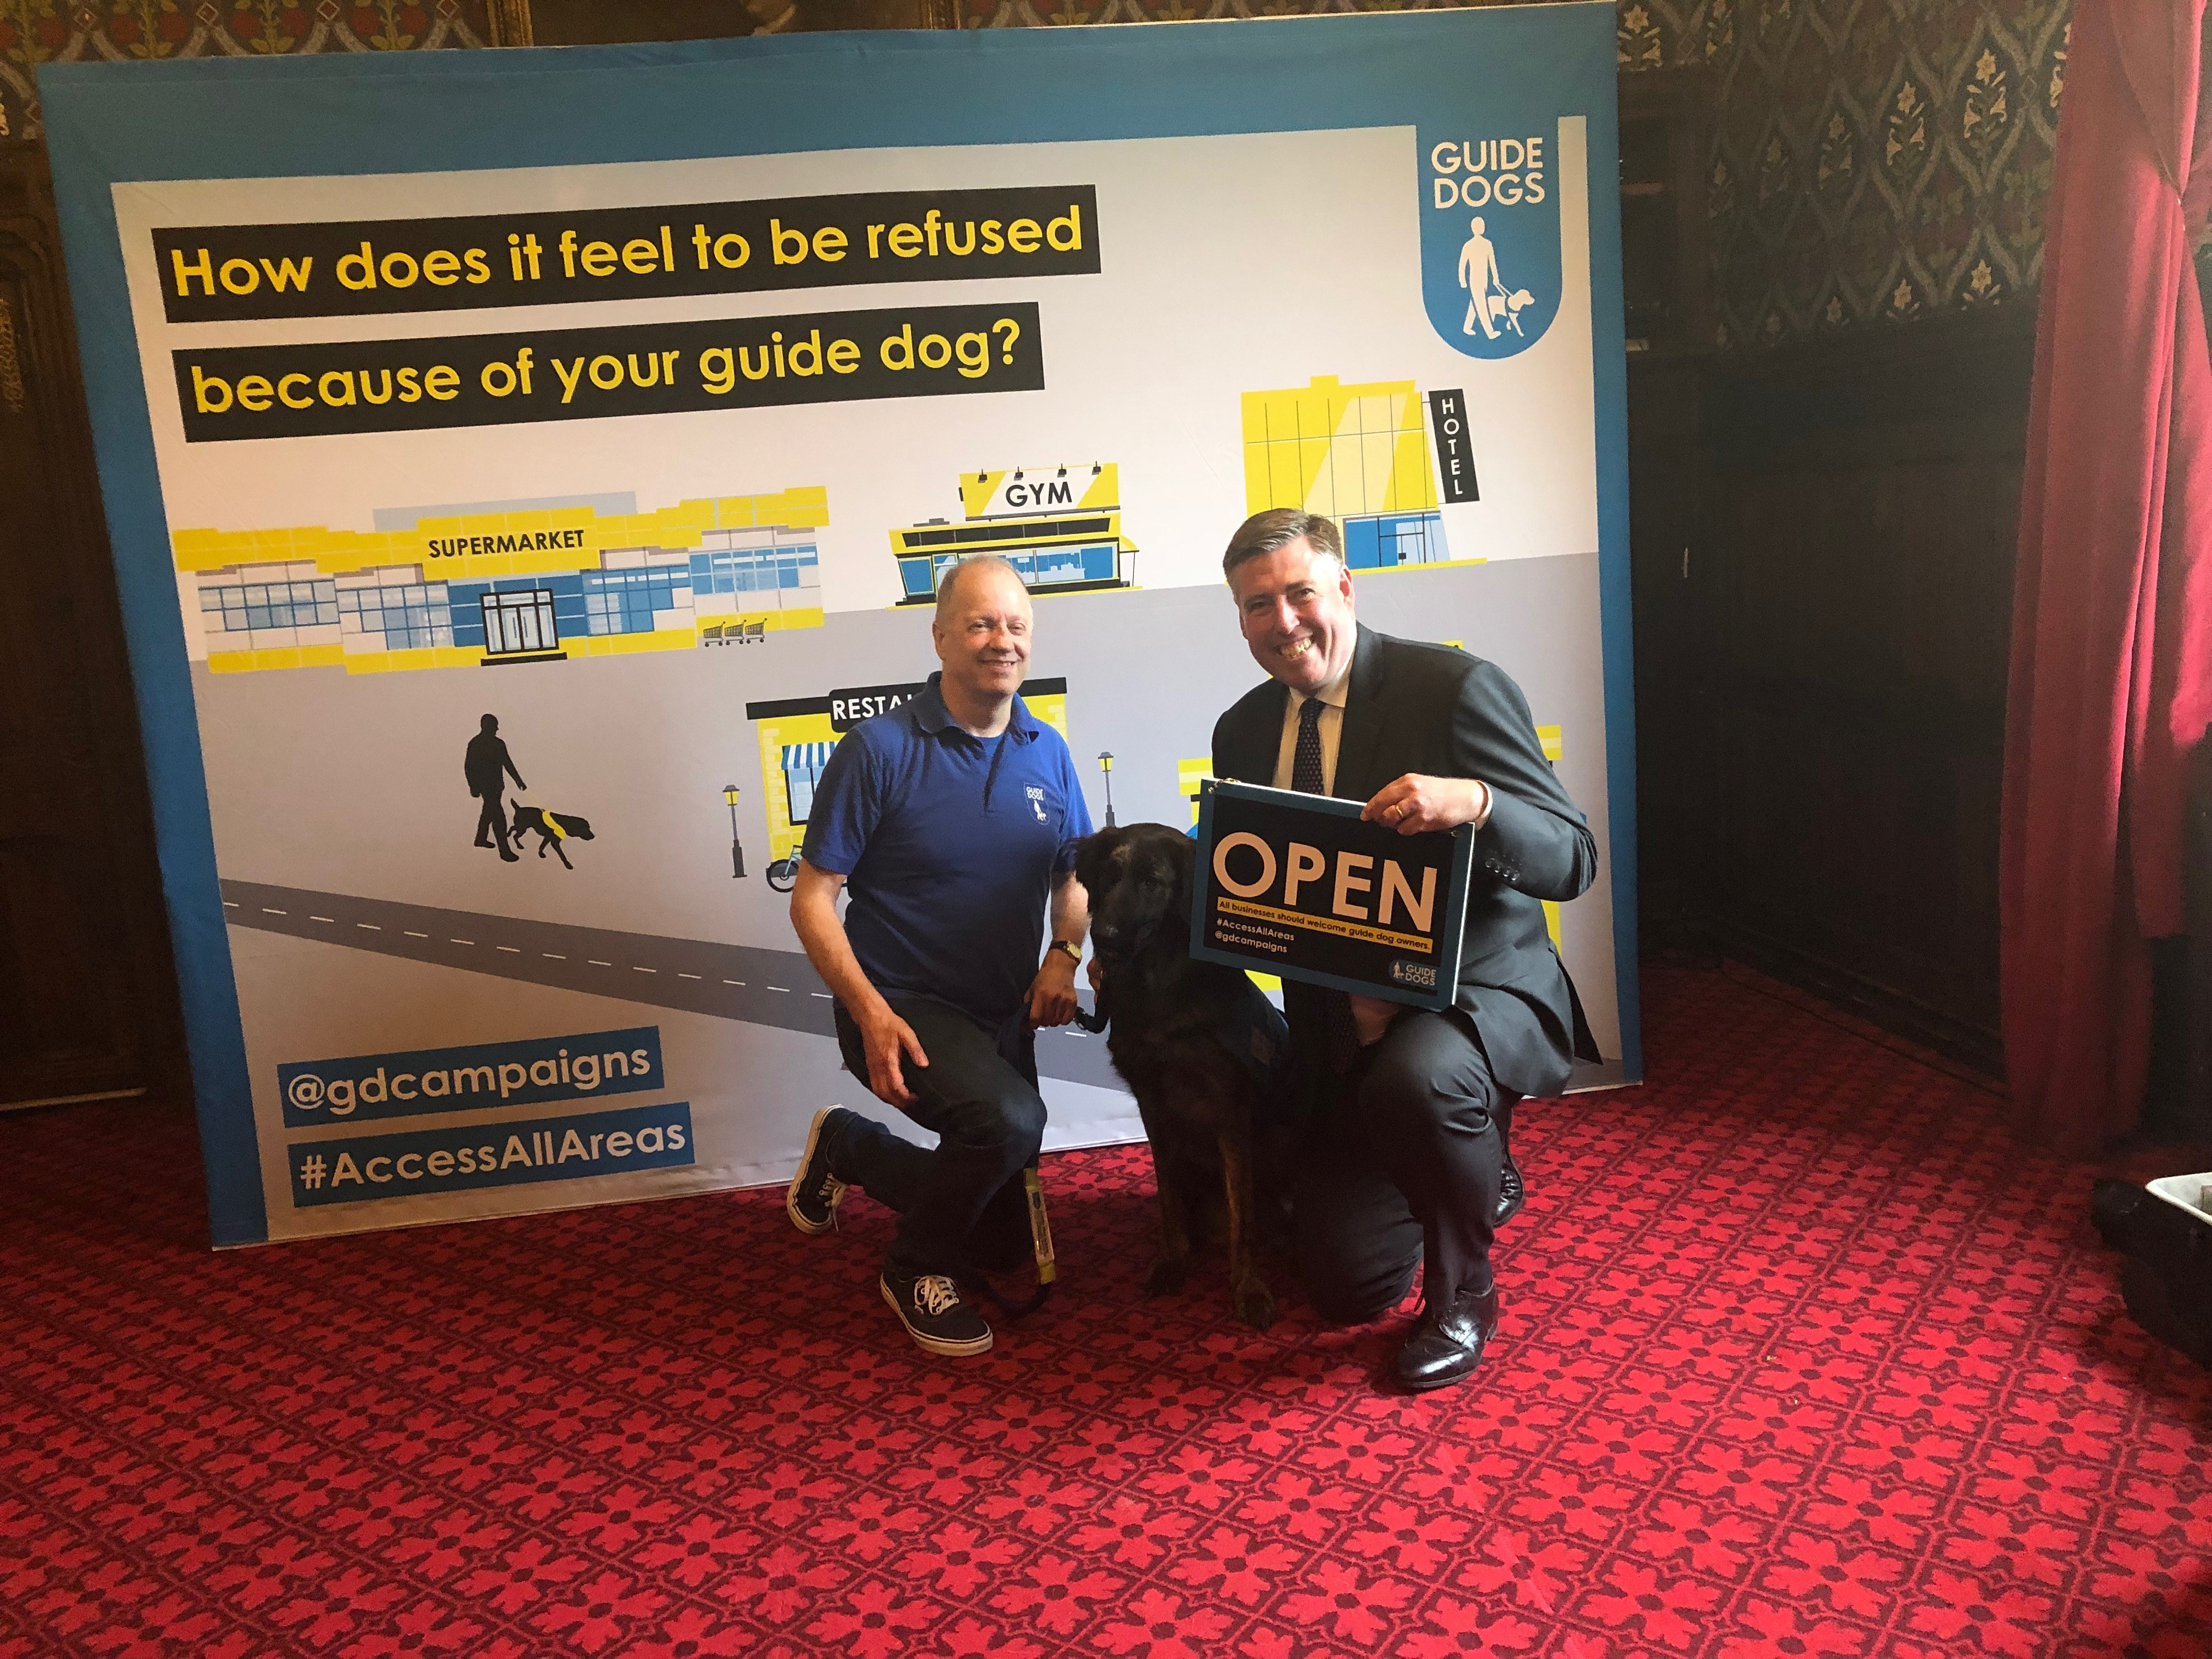 Guide Dogs Access All Areas campaign